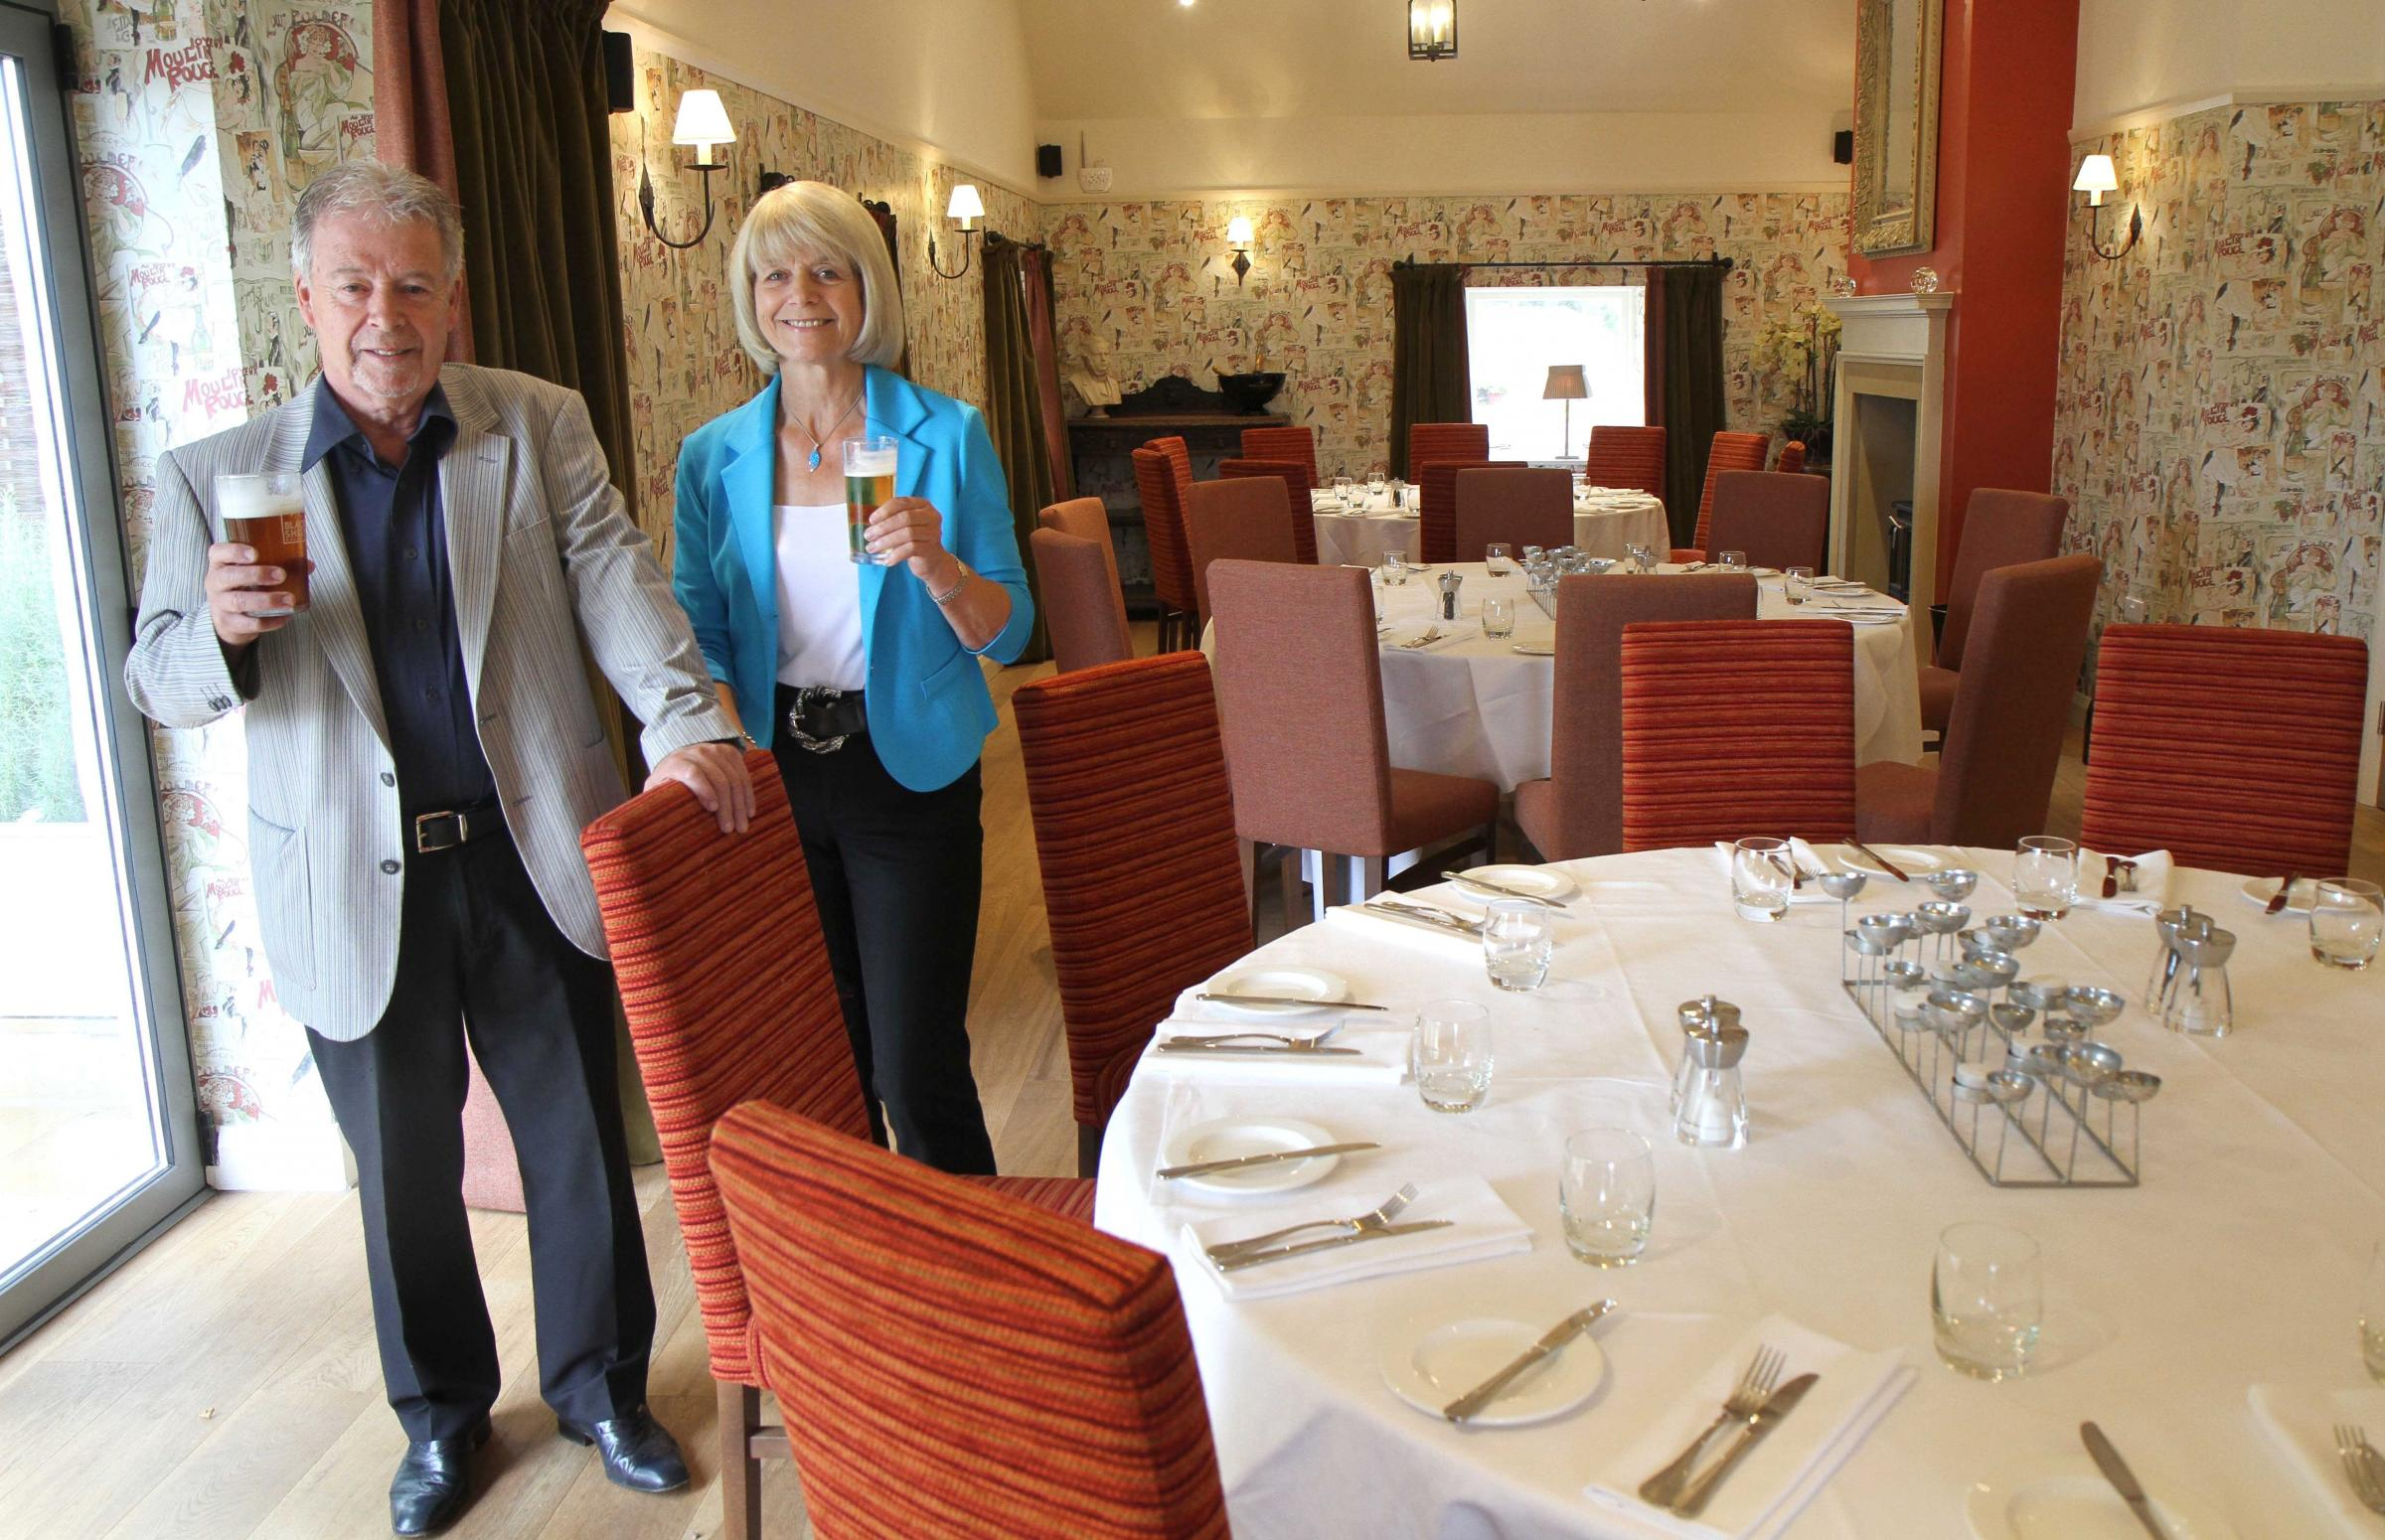 Refurbished inn names one of its private dining rooms  : 3178806 from www.thenorthernecho.co.uk size 2400 x 1550 jpeg 452kB